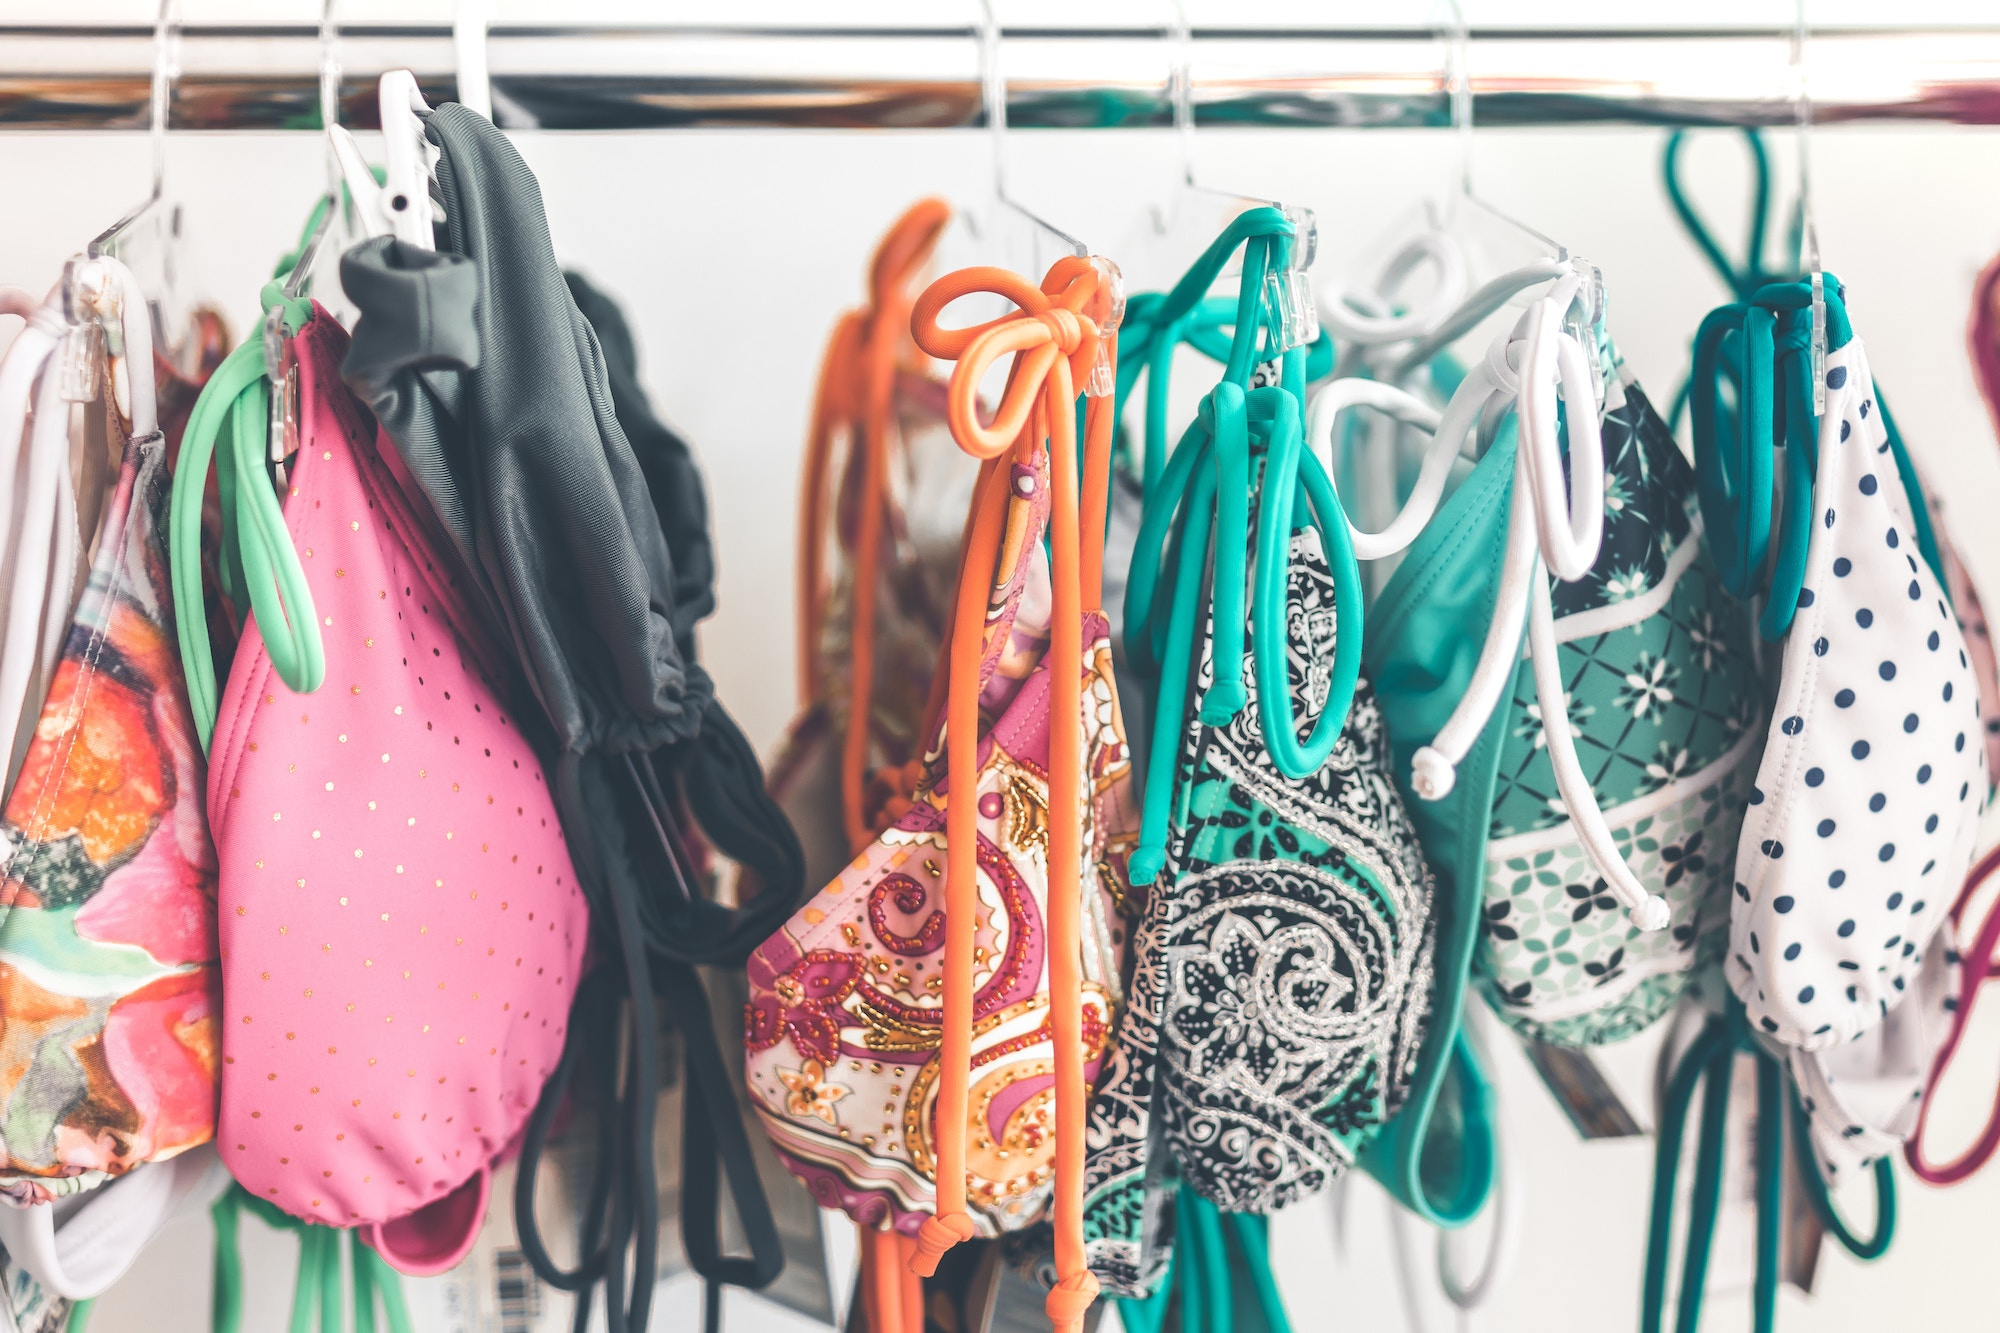 HiP Paris Blog tells you about one writer's experience bikini shopping in Paris like at the BHV which has a selection of colorful bikinis.